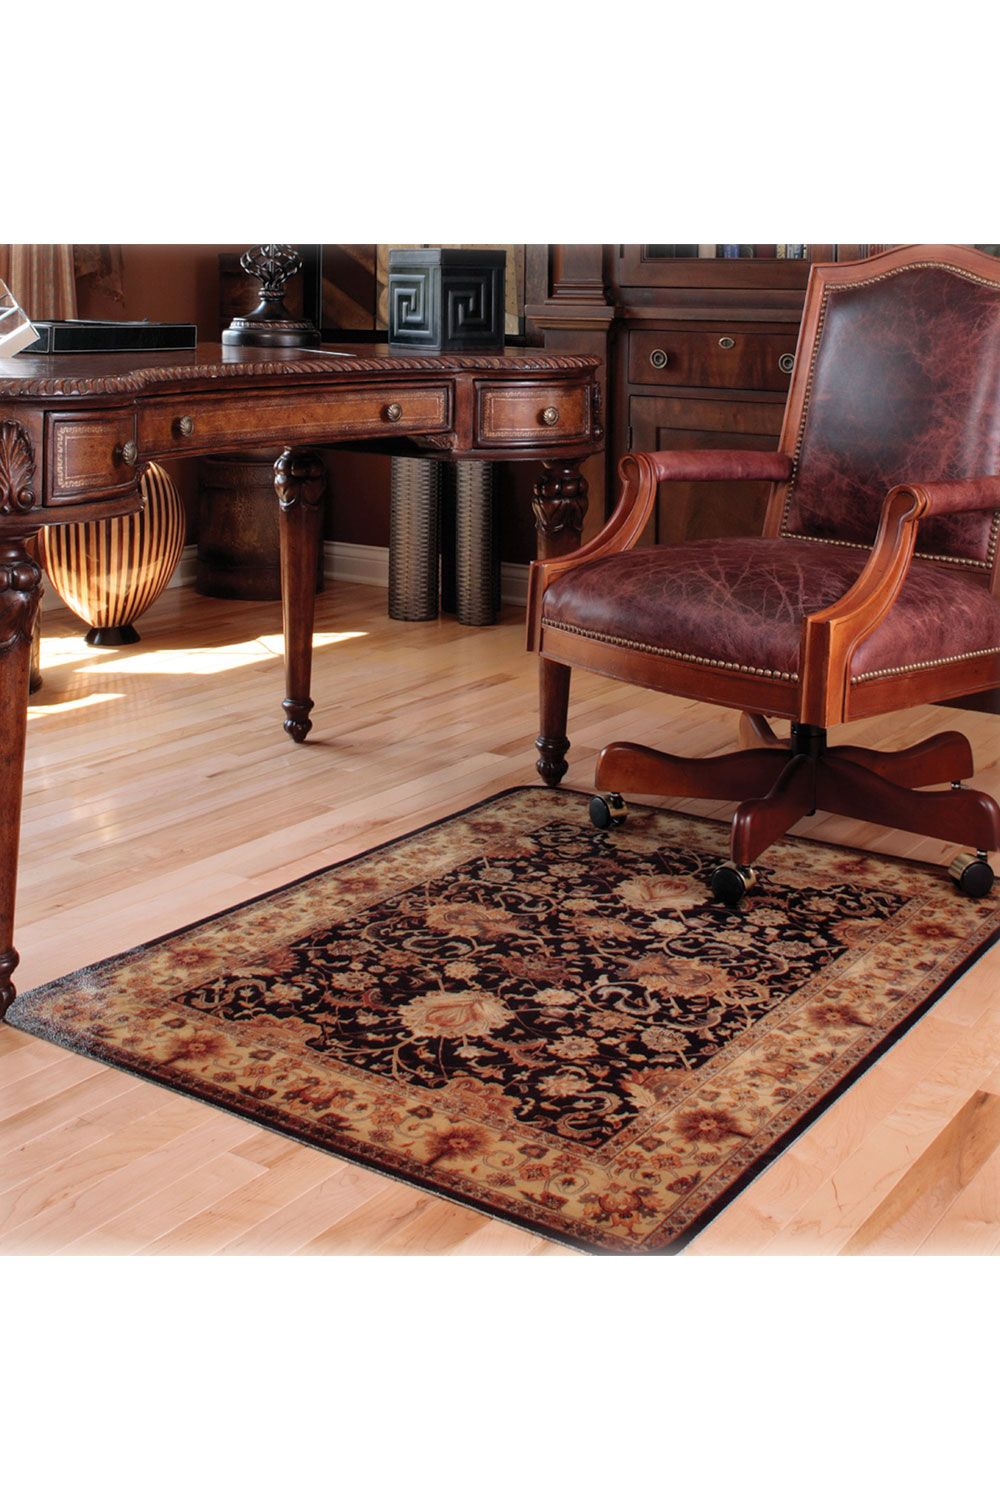 Deflecto Decorative Harbor Pointe Chair Mat For Hard